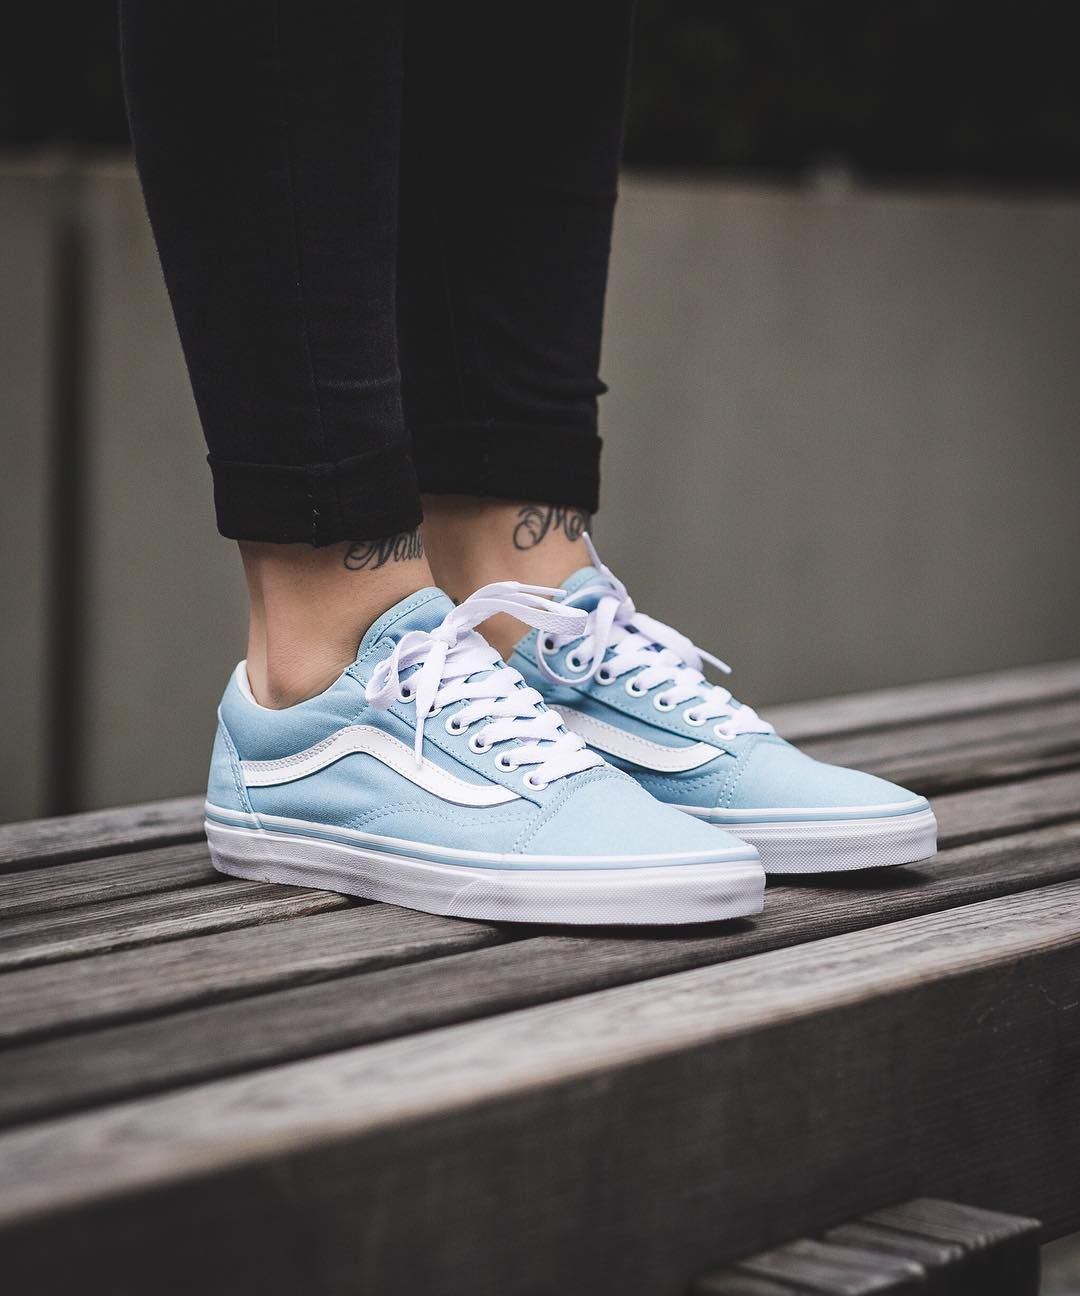 c452dffab3 Vans Old Skool  Crystal Blue True White